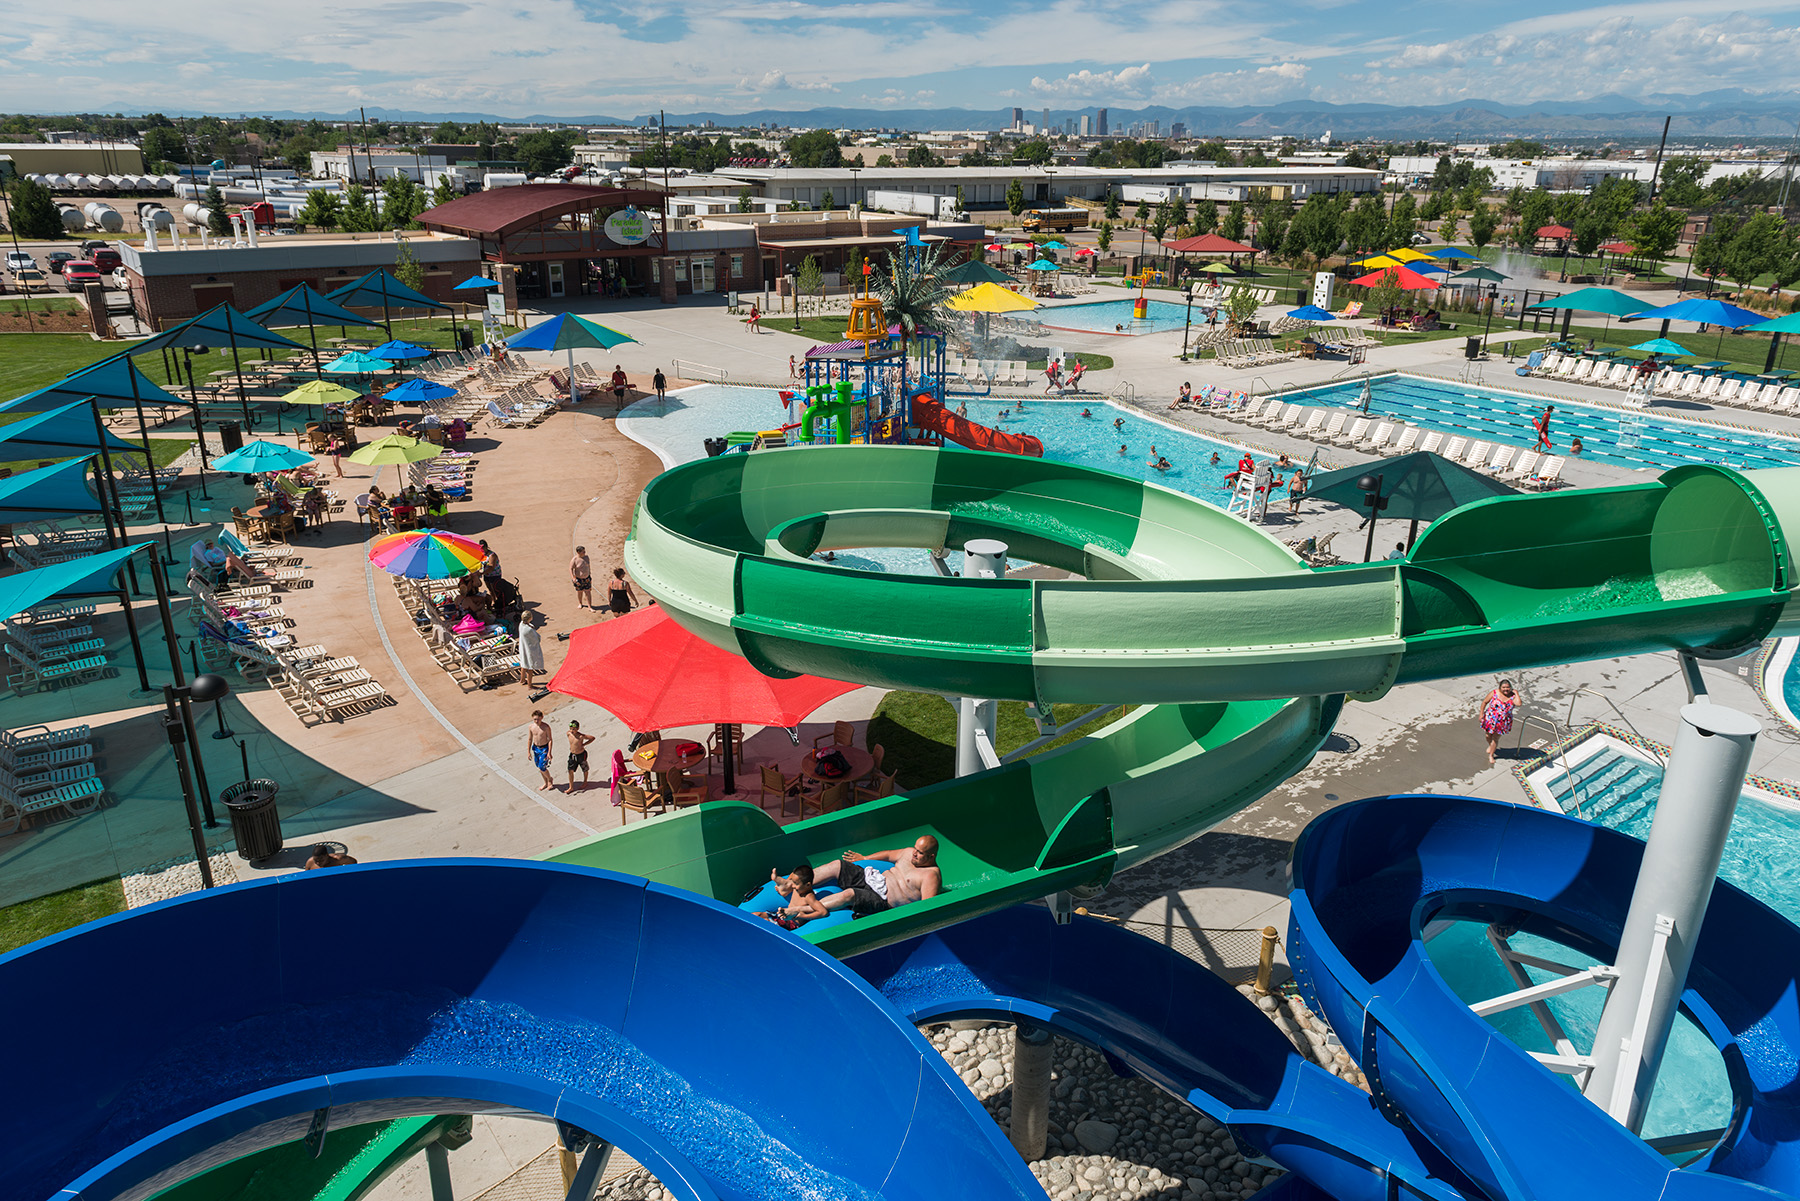 Overview of park and slides